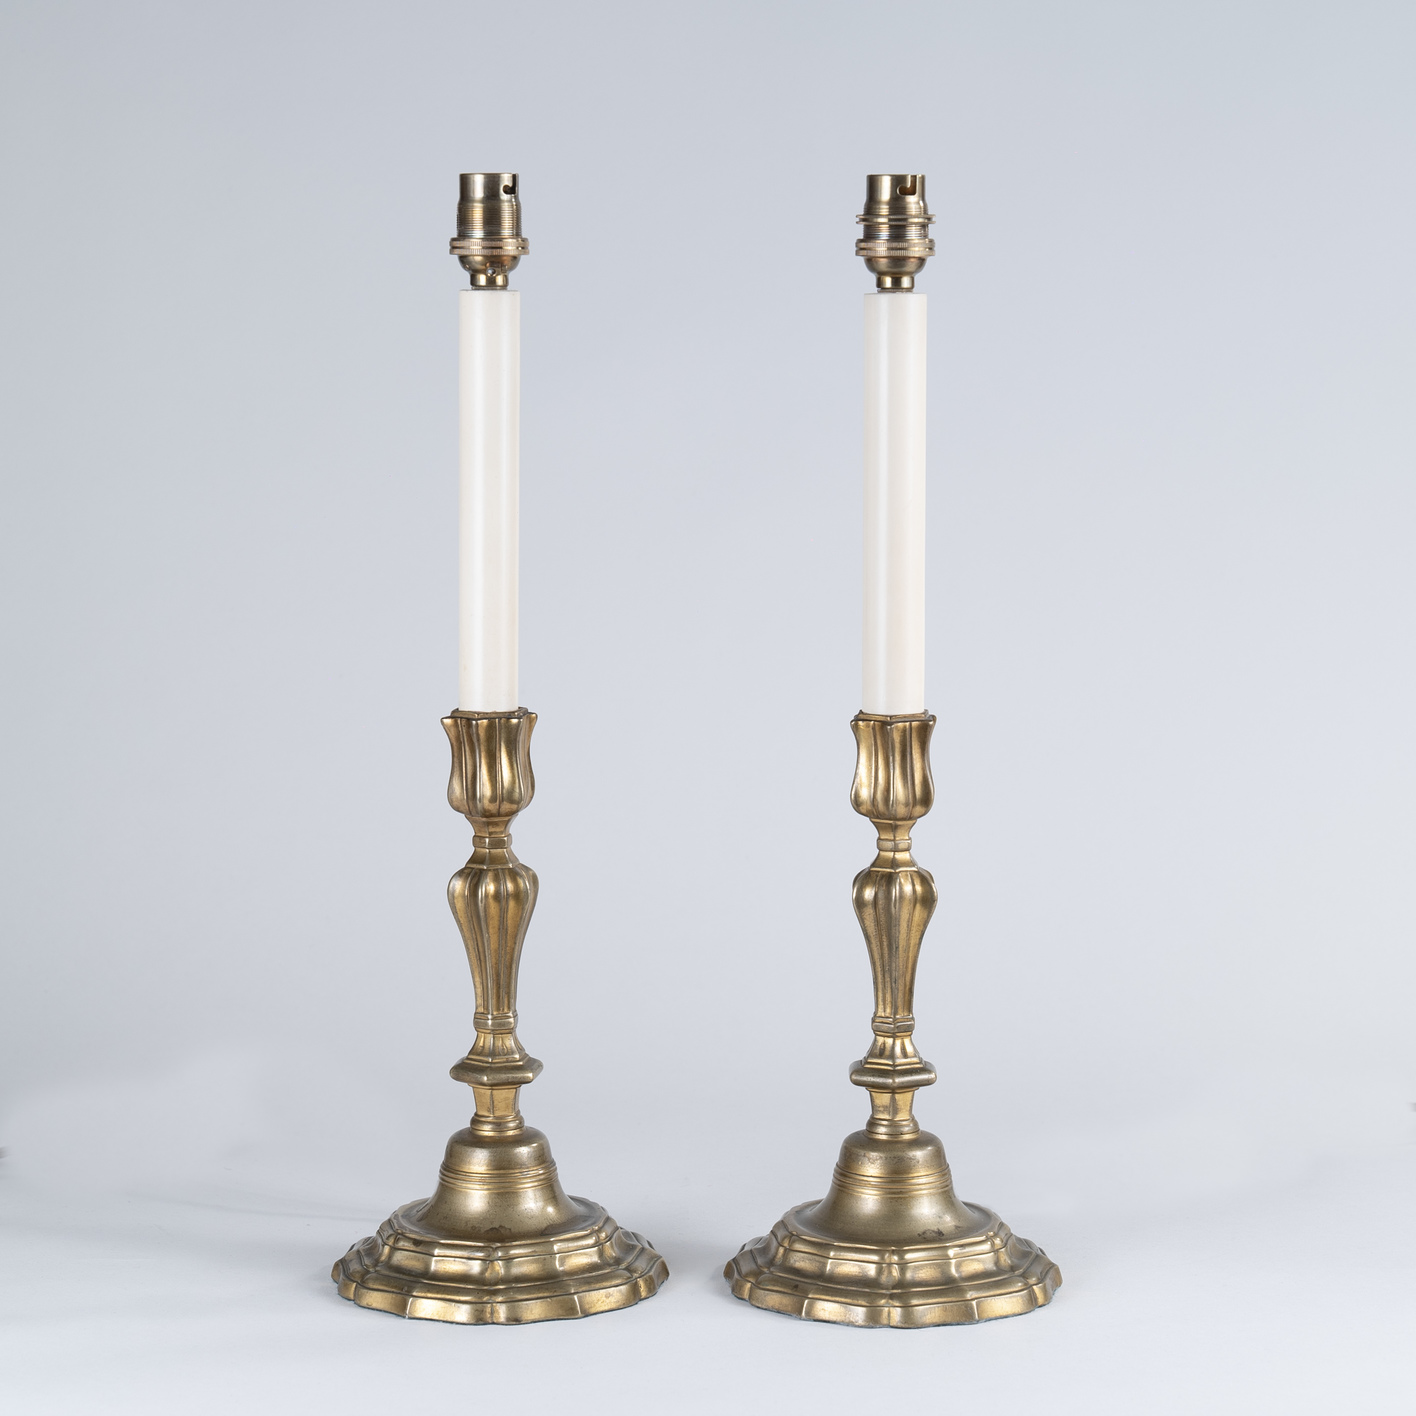 Pair of mid 18th Century French Ormolu Candlesticks lamped